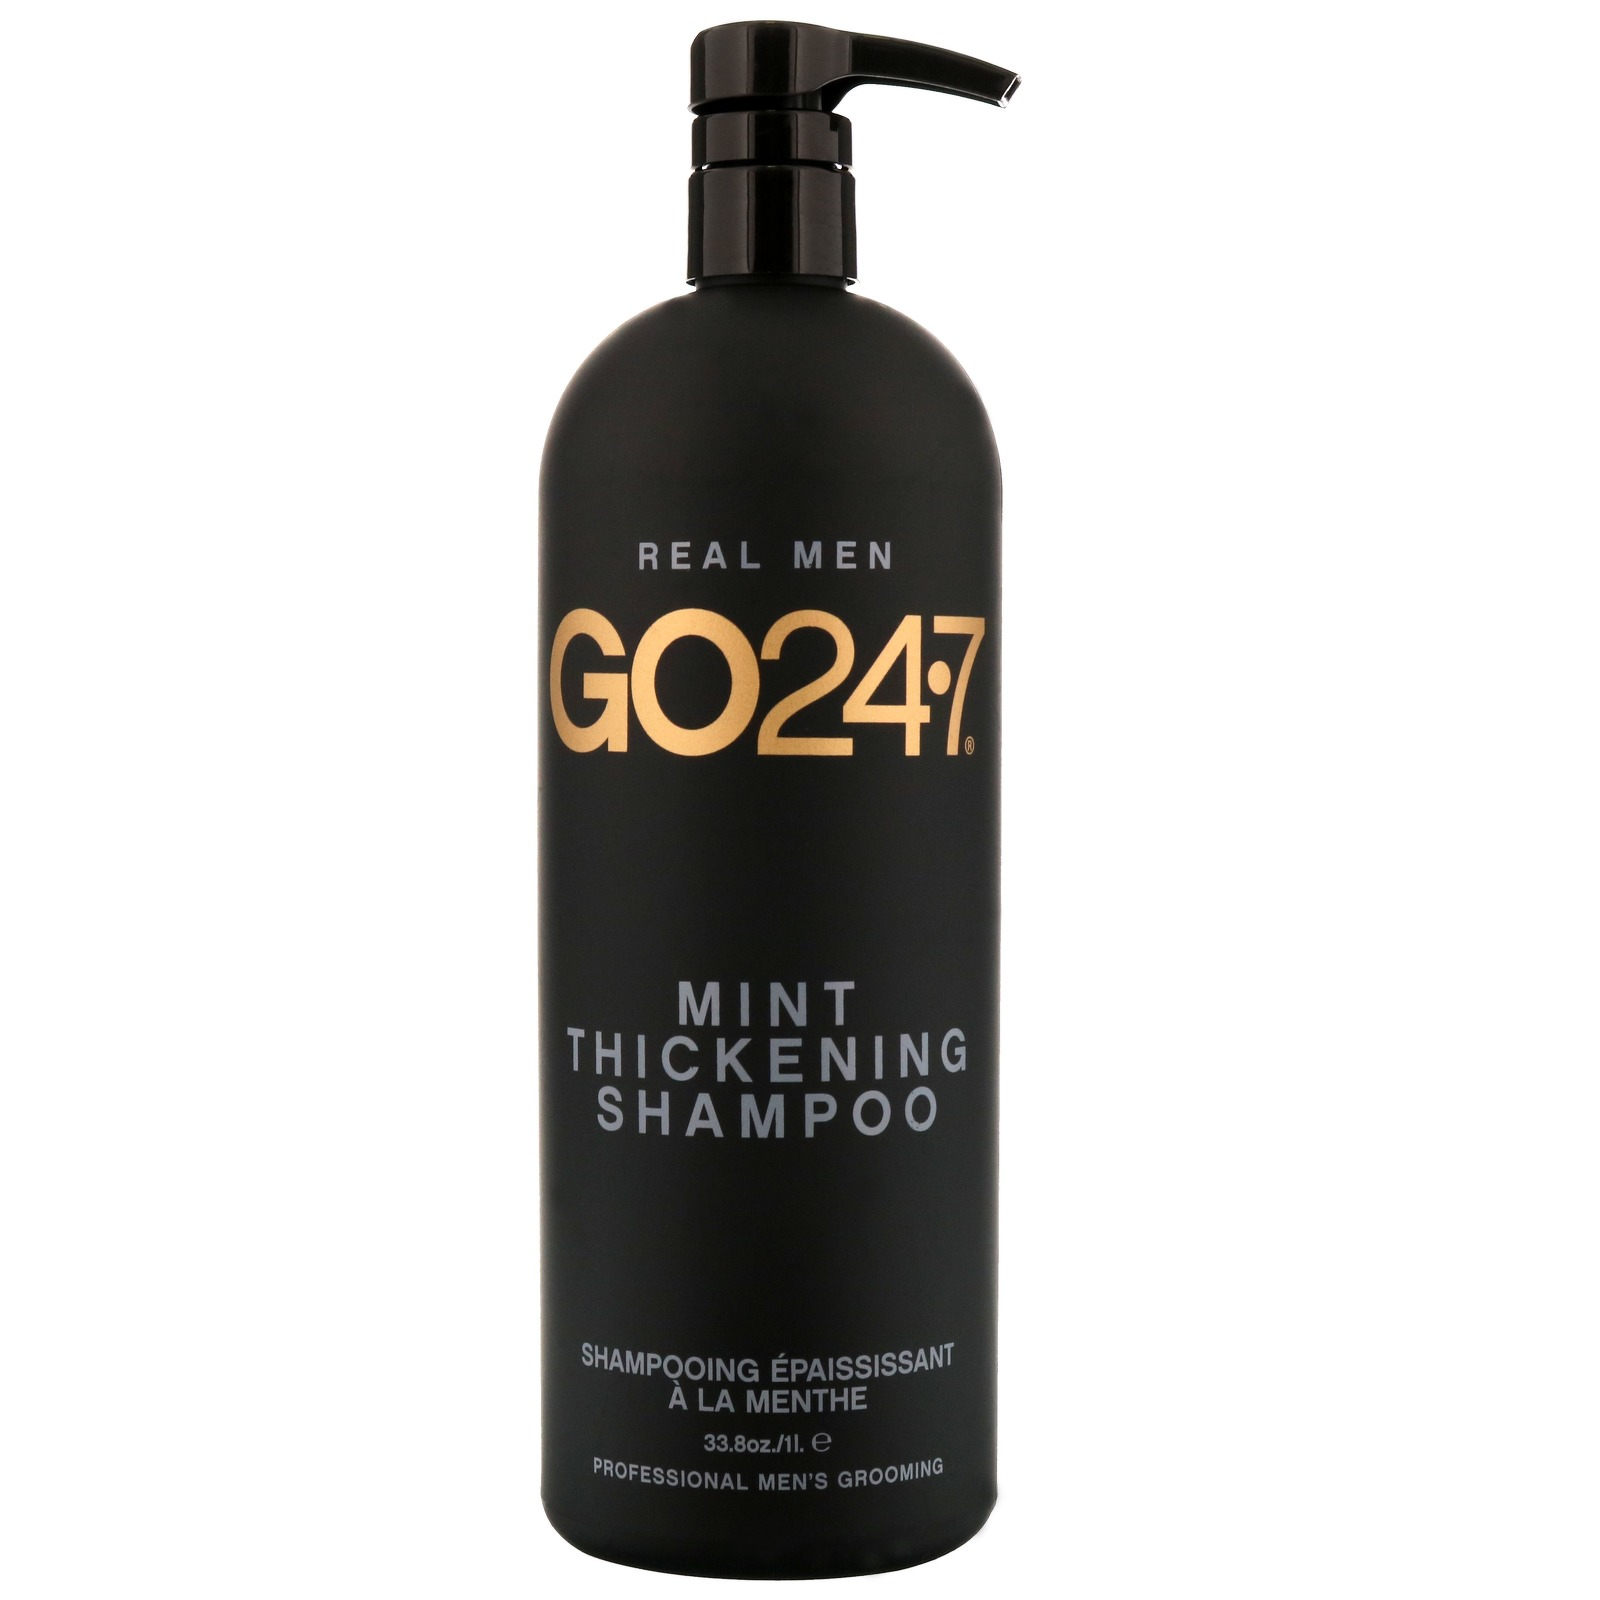 GO24.7 Cleanse & Condition Menta l'ispessimento Shampoo 1000ml/33.8 oz.